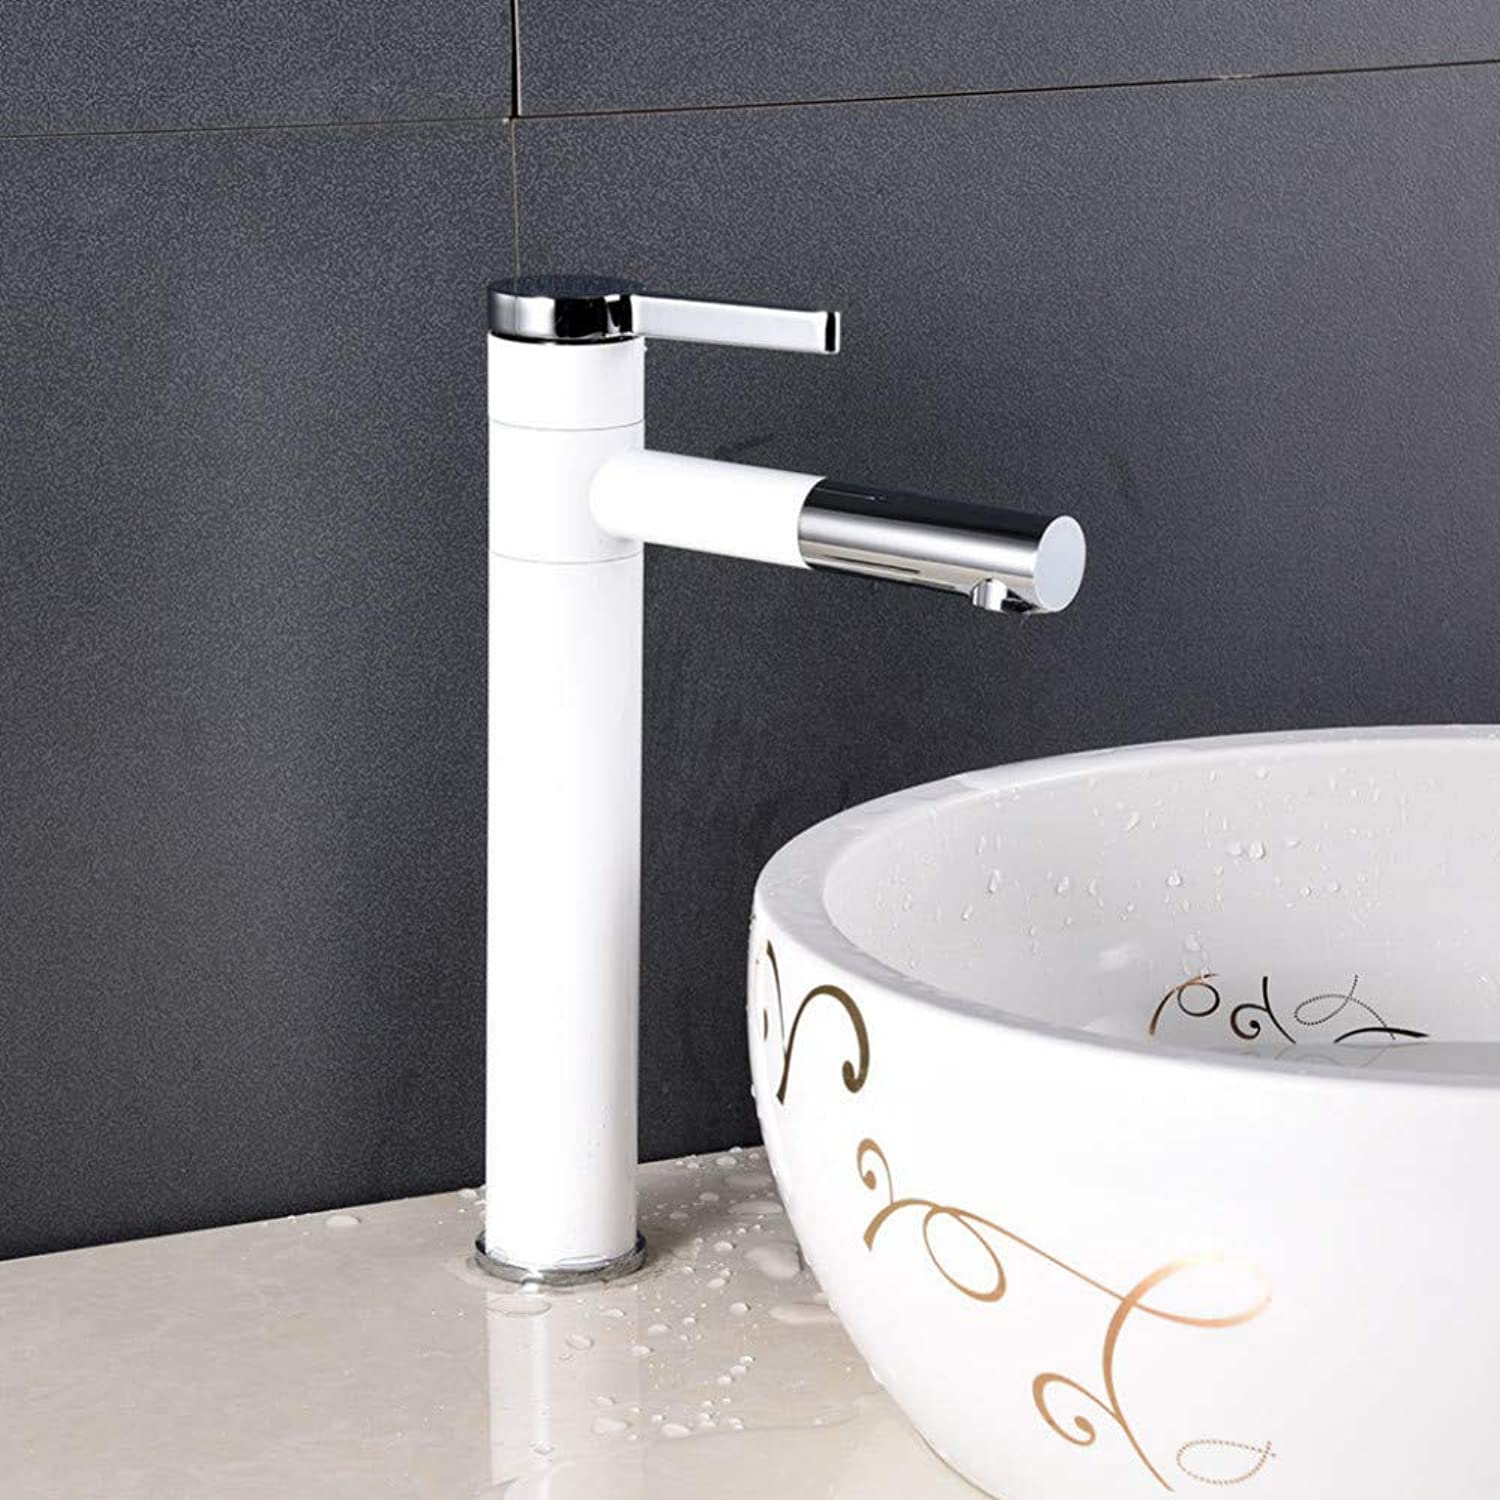 Faucet Paint Lavatory Faucet Bathroom Heightening wash Basin Faucet redating Faucet European hot and Cold Above Counter Basin Faucet